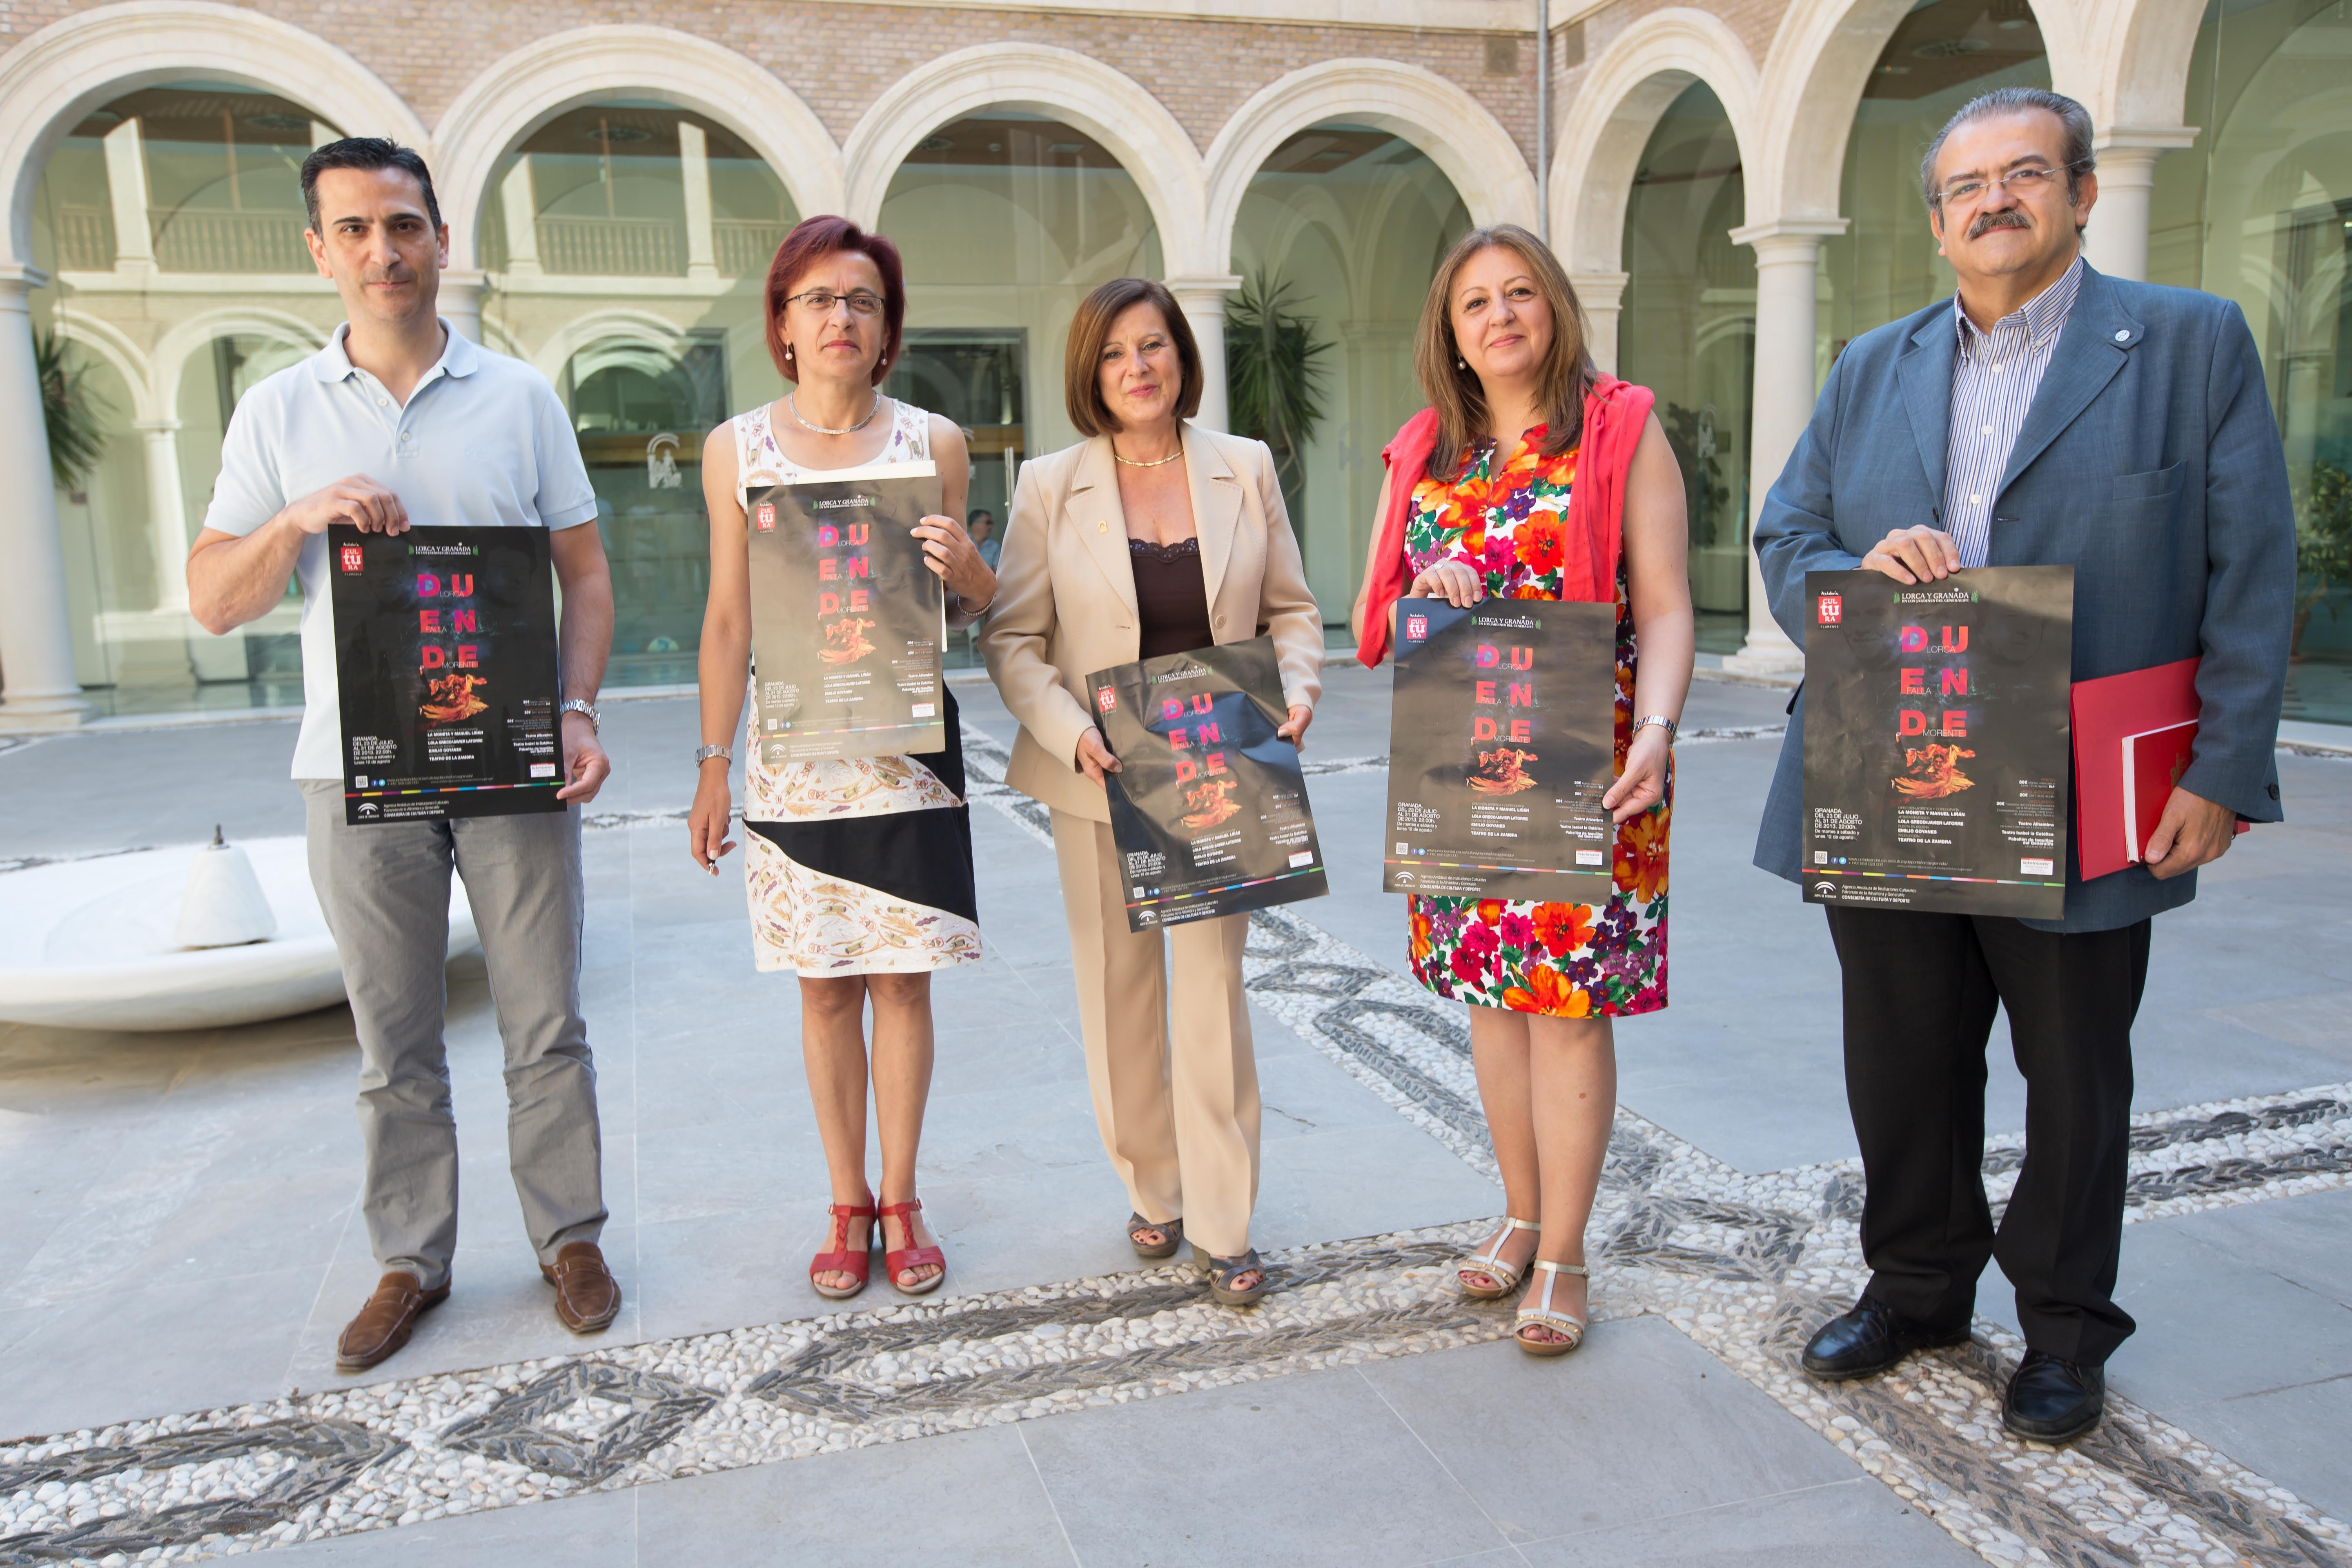 The Regional Government reaches an agreement with hoteliers to increase the number of nights tourists spend in the city through the Lorca and Granada programme